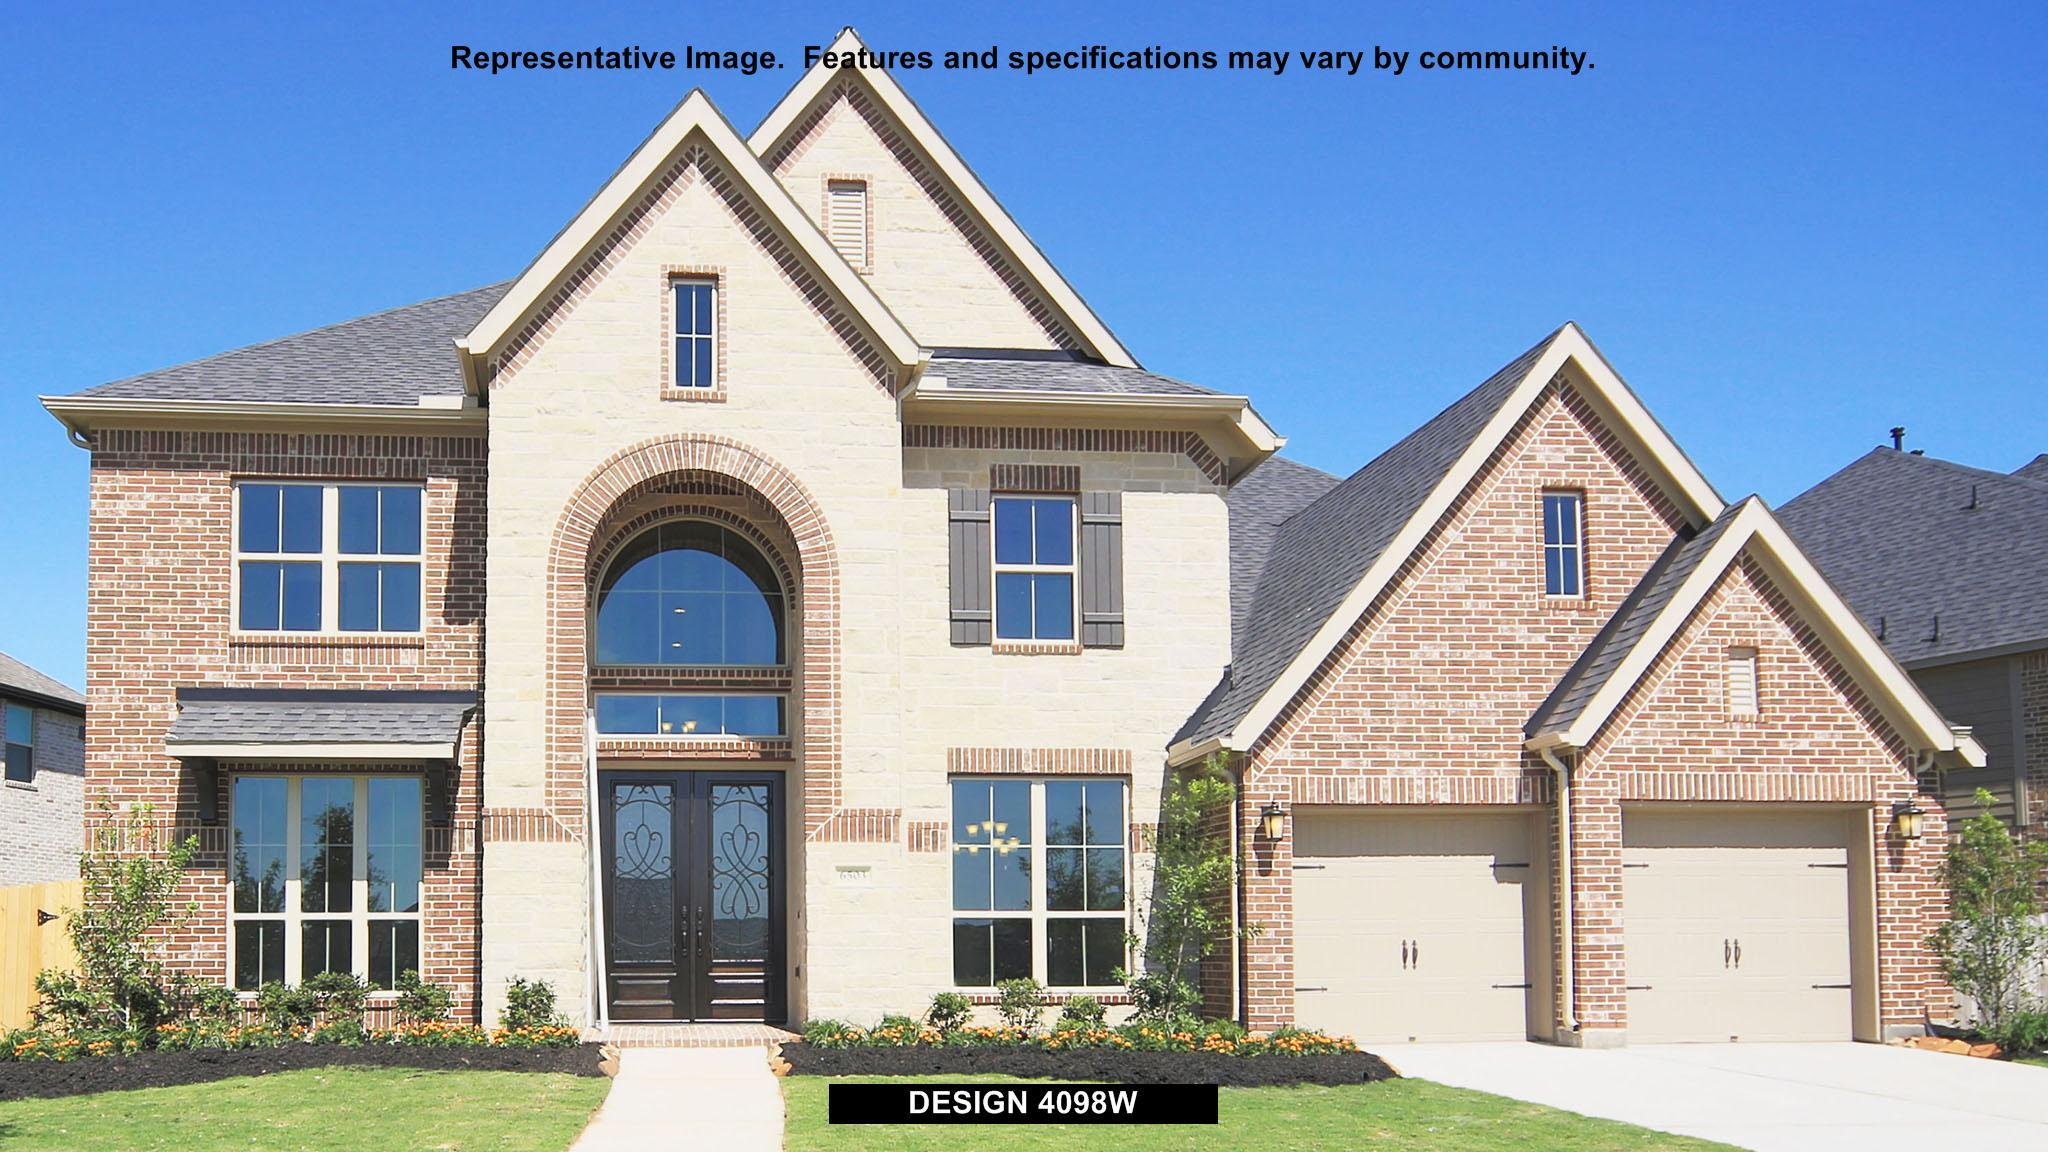 Single Family for Sale at Meridiana 70' - 4098w 9815 Bell Court Iowa Colony, Texas 77583 United States